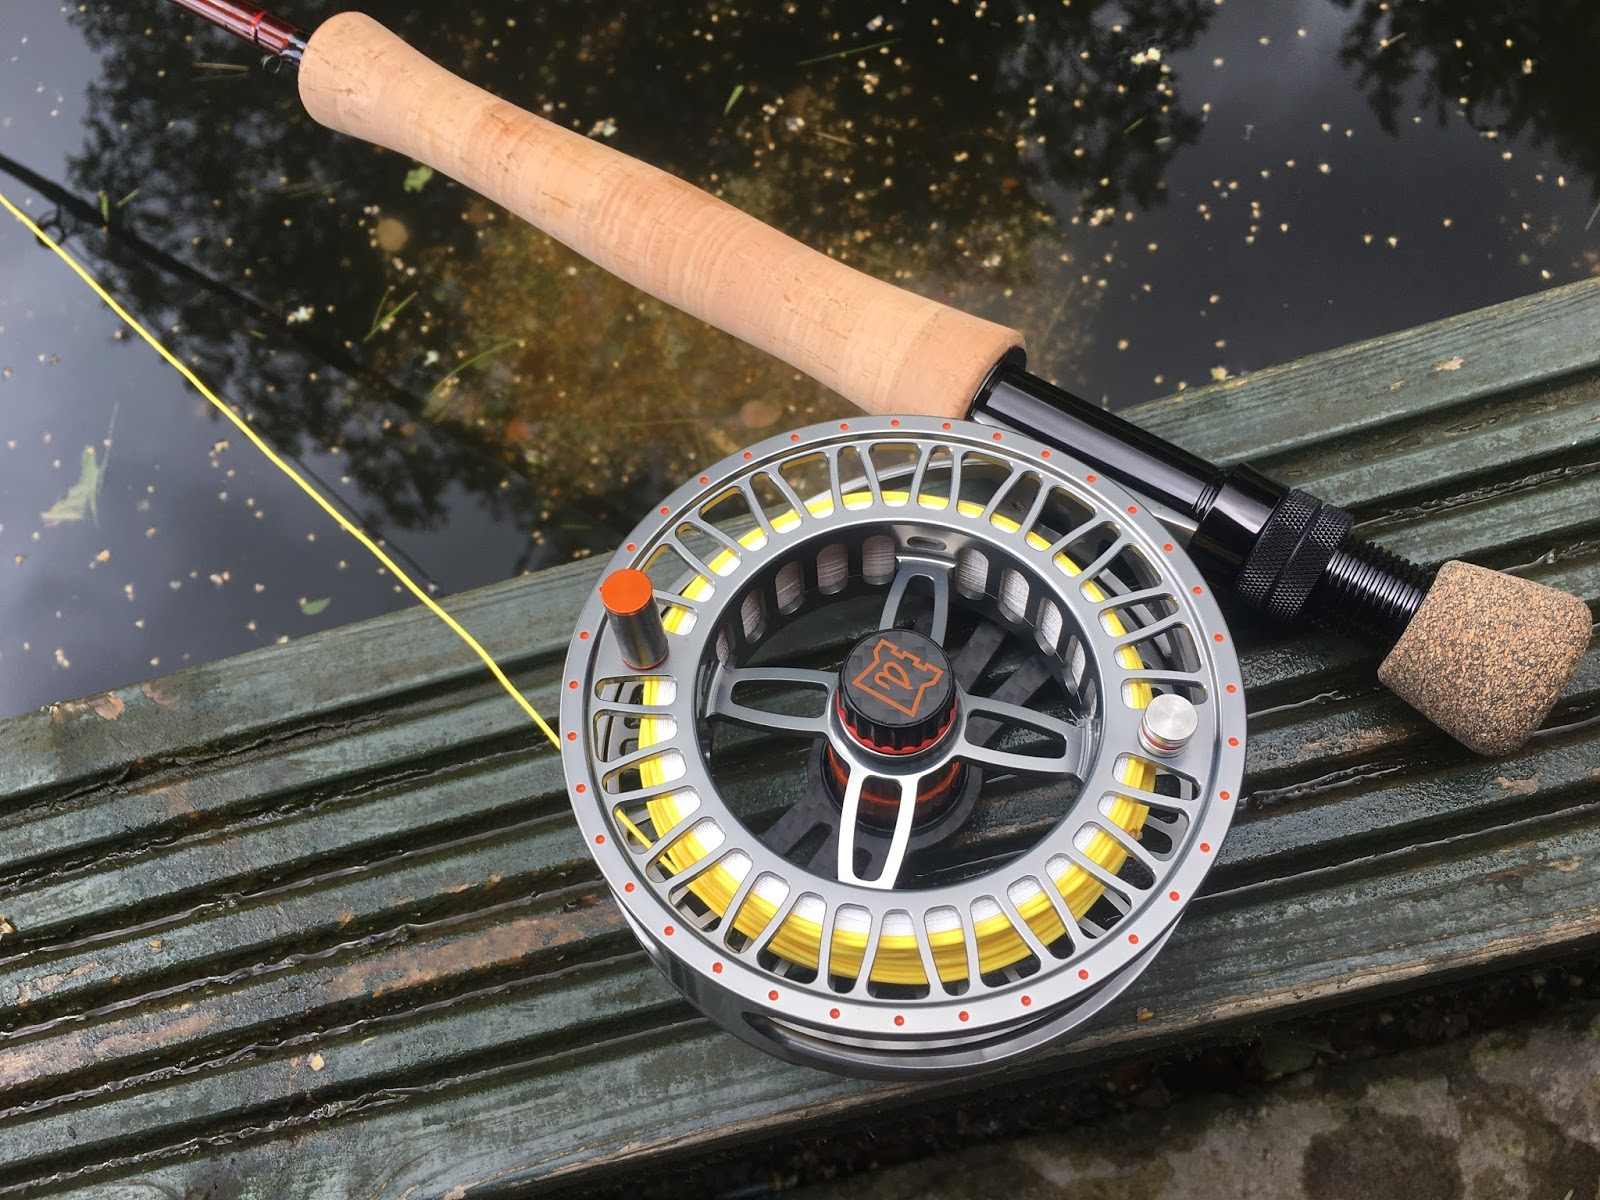 New hardy fly fishing gear for 2018 special preview for Fly fishing gear